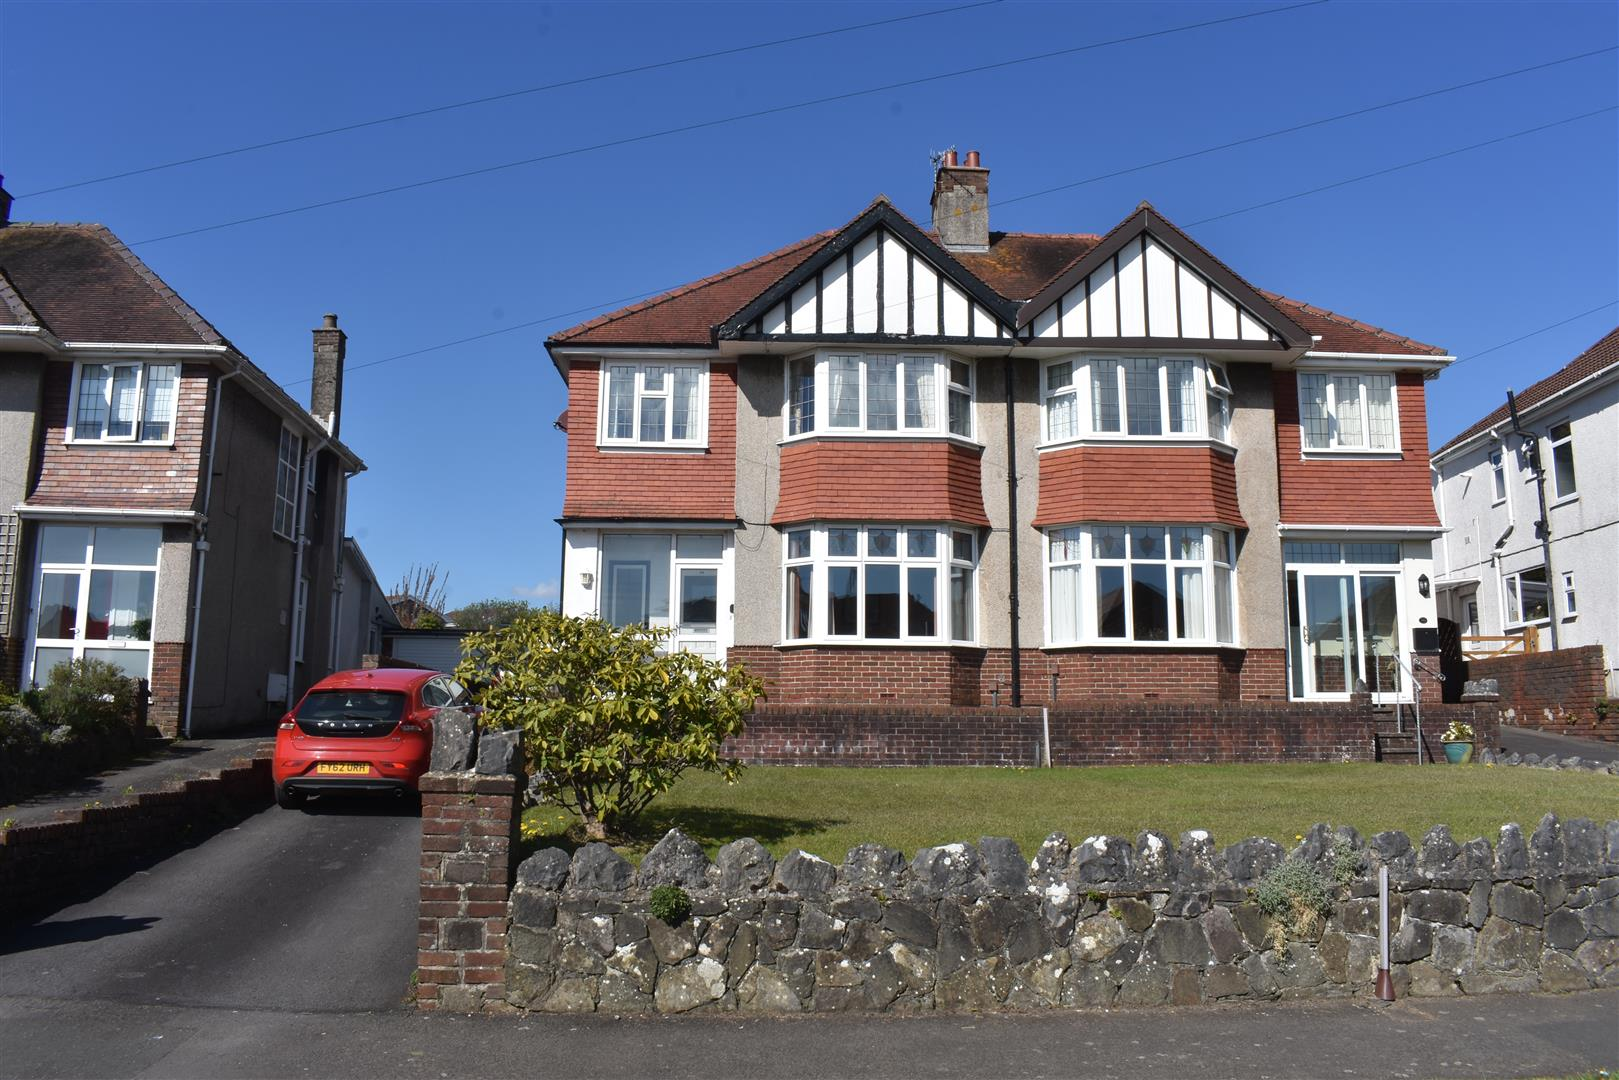 Cherry Grove, Sketty, Swansea, SA2 8AT